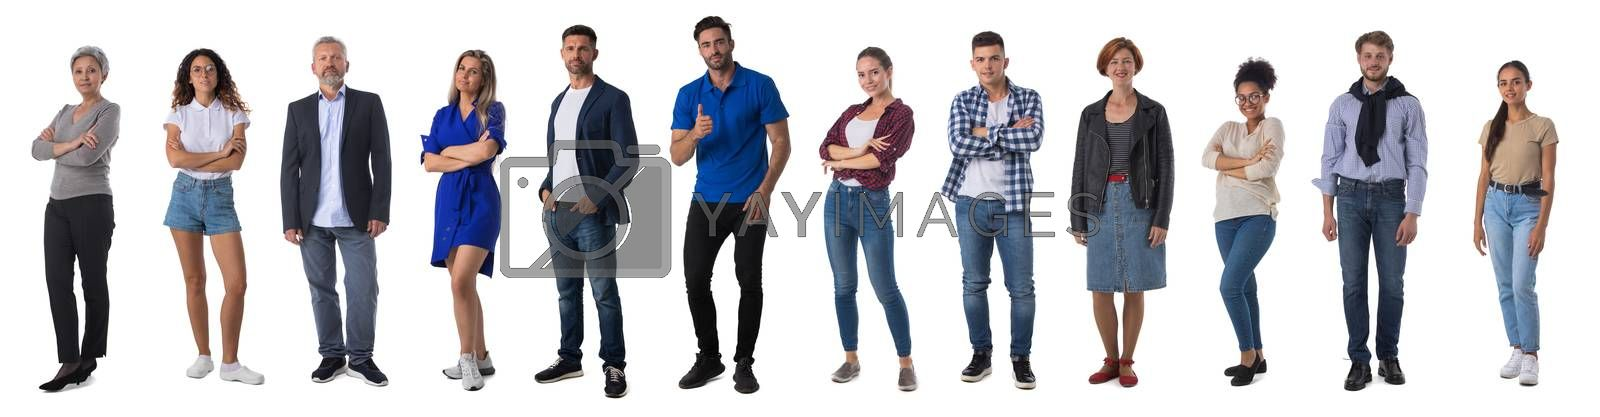 Collection of full length portrait of people in casual clothes isolated on white background